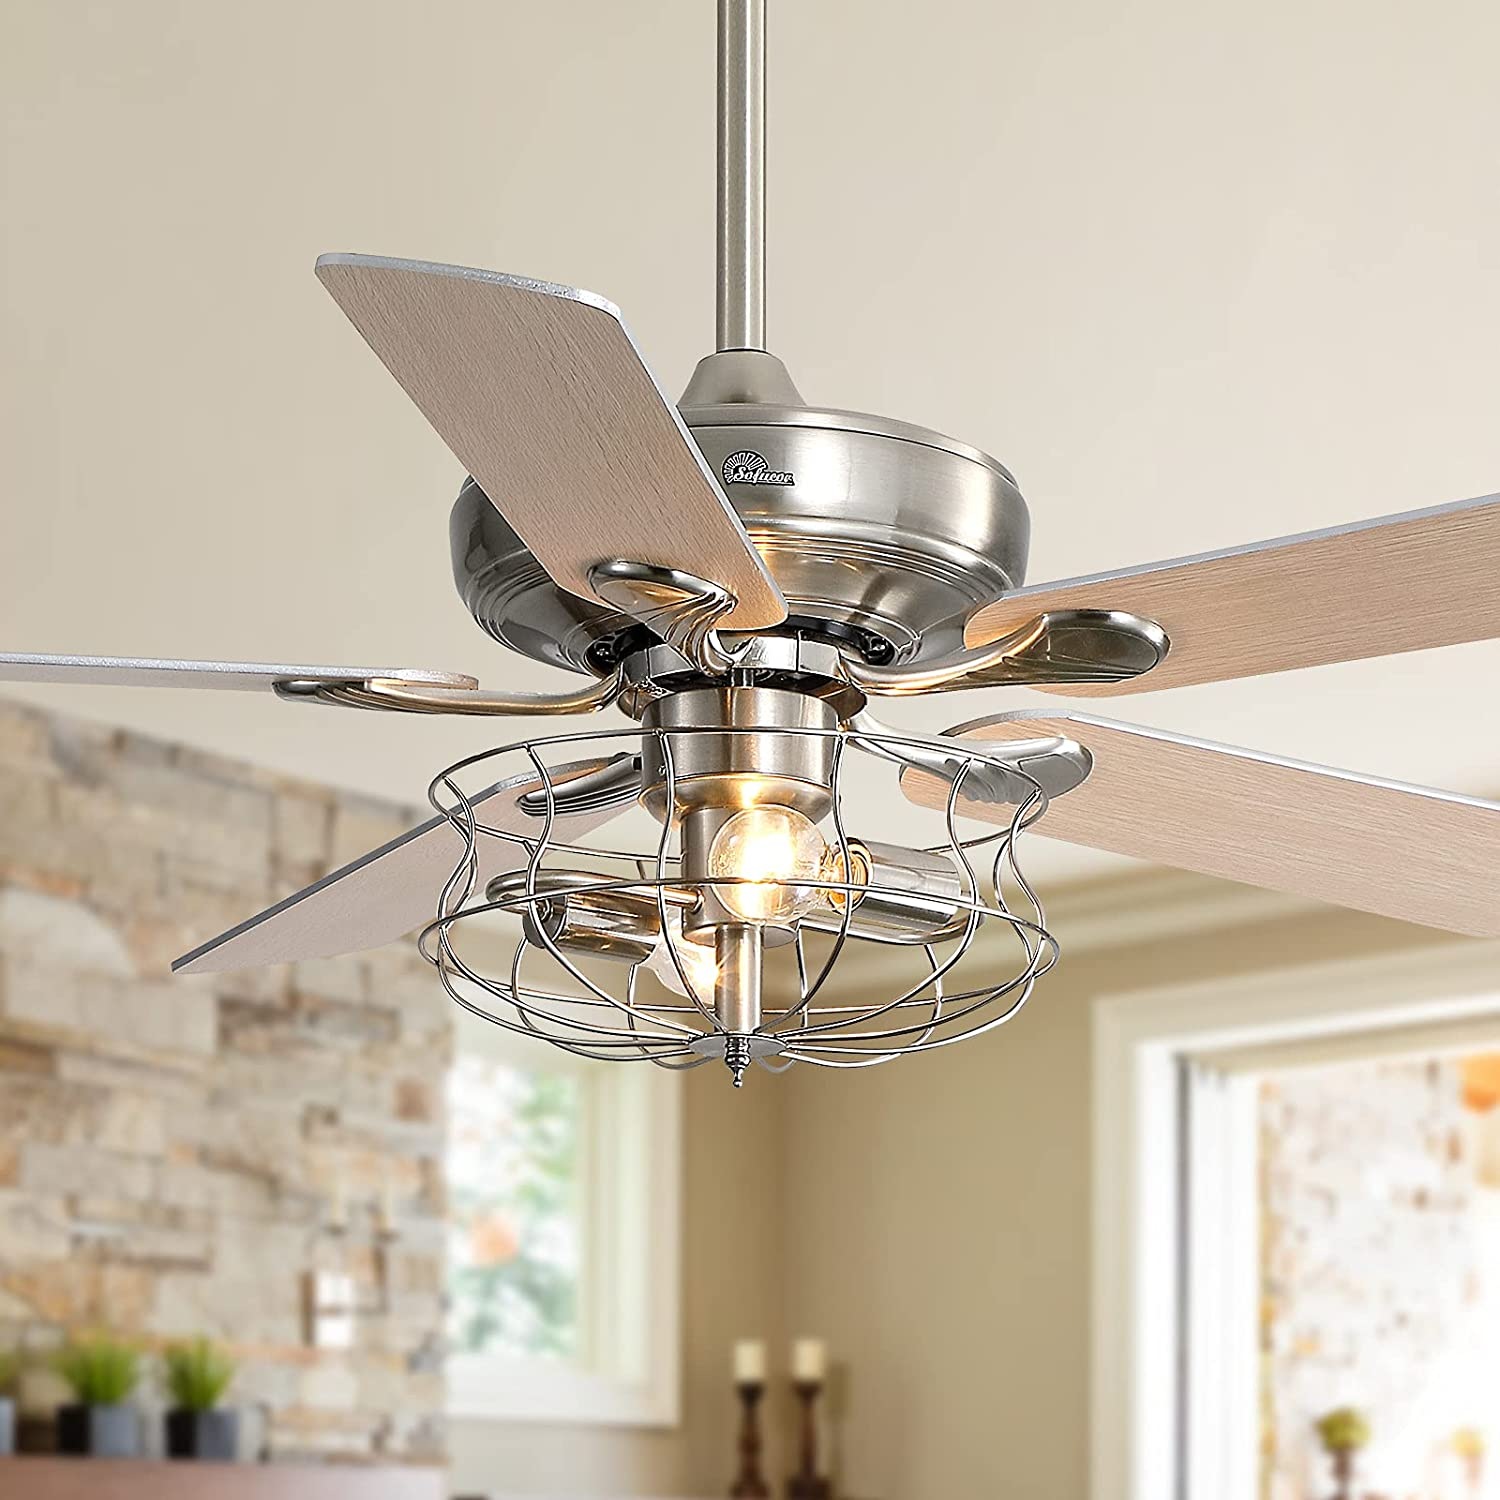 """Sofucor 52"""" Farmhouse Very popular Ceiling Fan with Powerf and Product Remote Light -"""